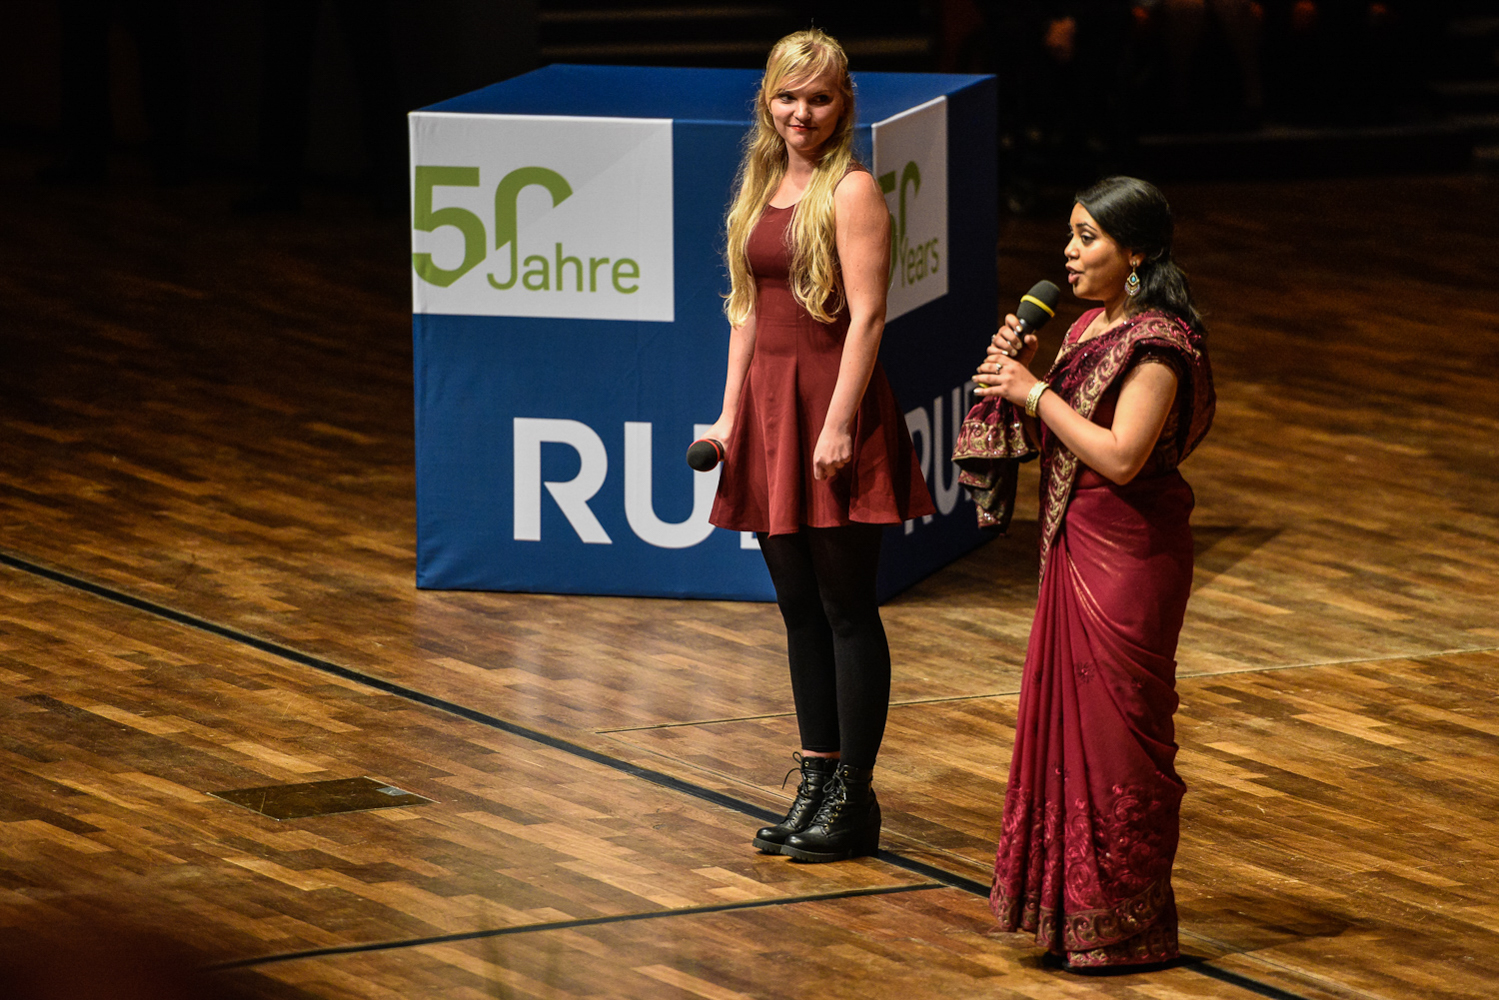 rub-turns-50-official-ceremony-at-the-audimax